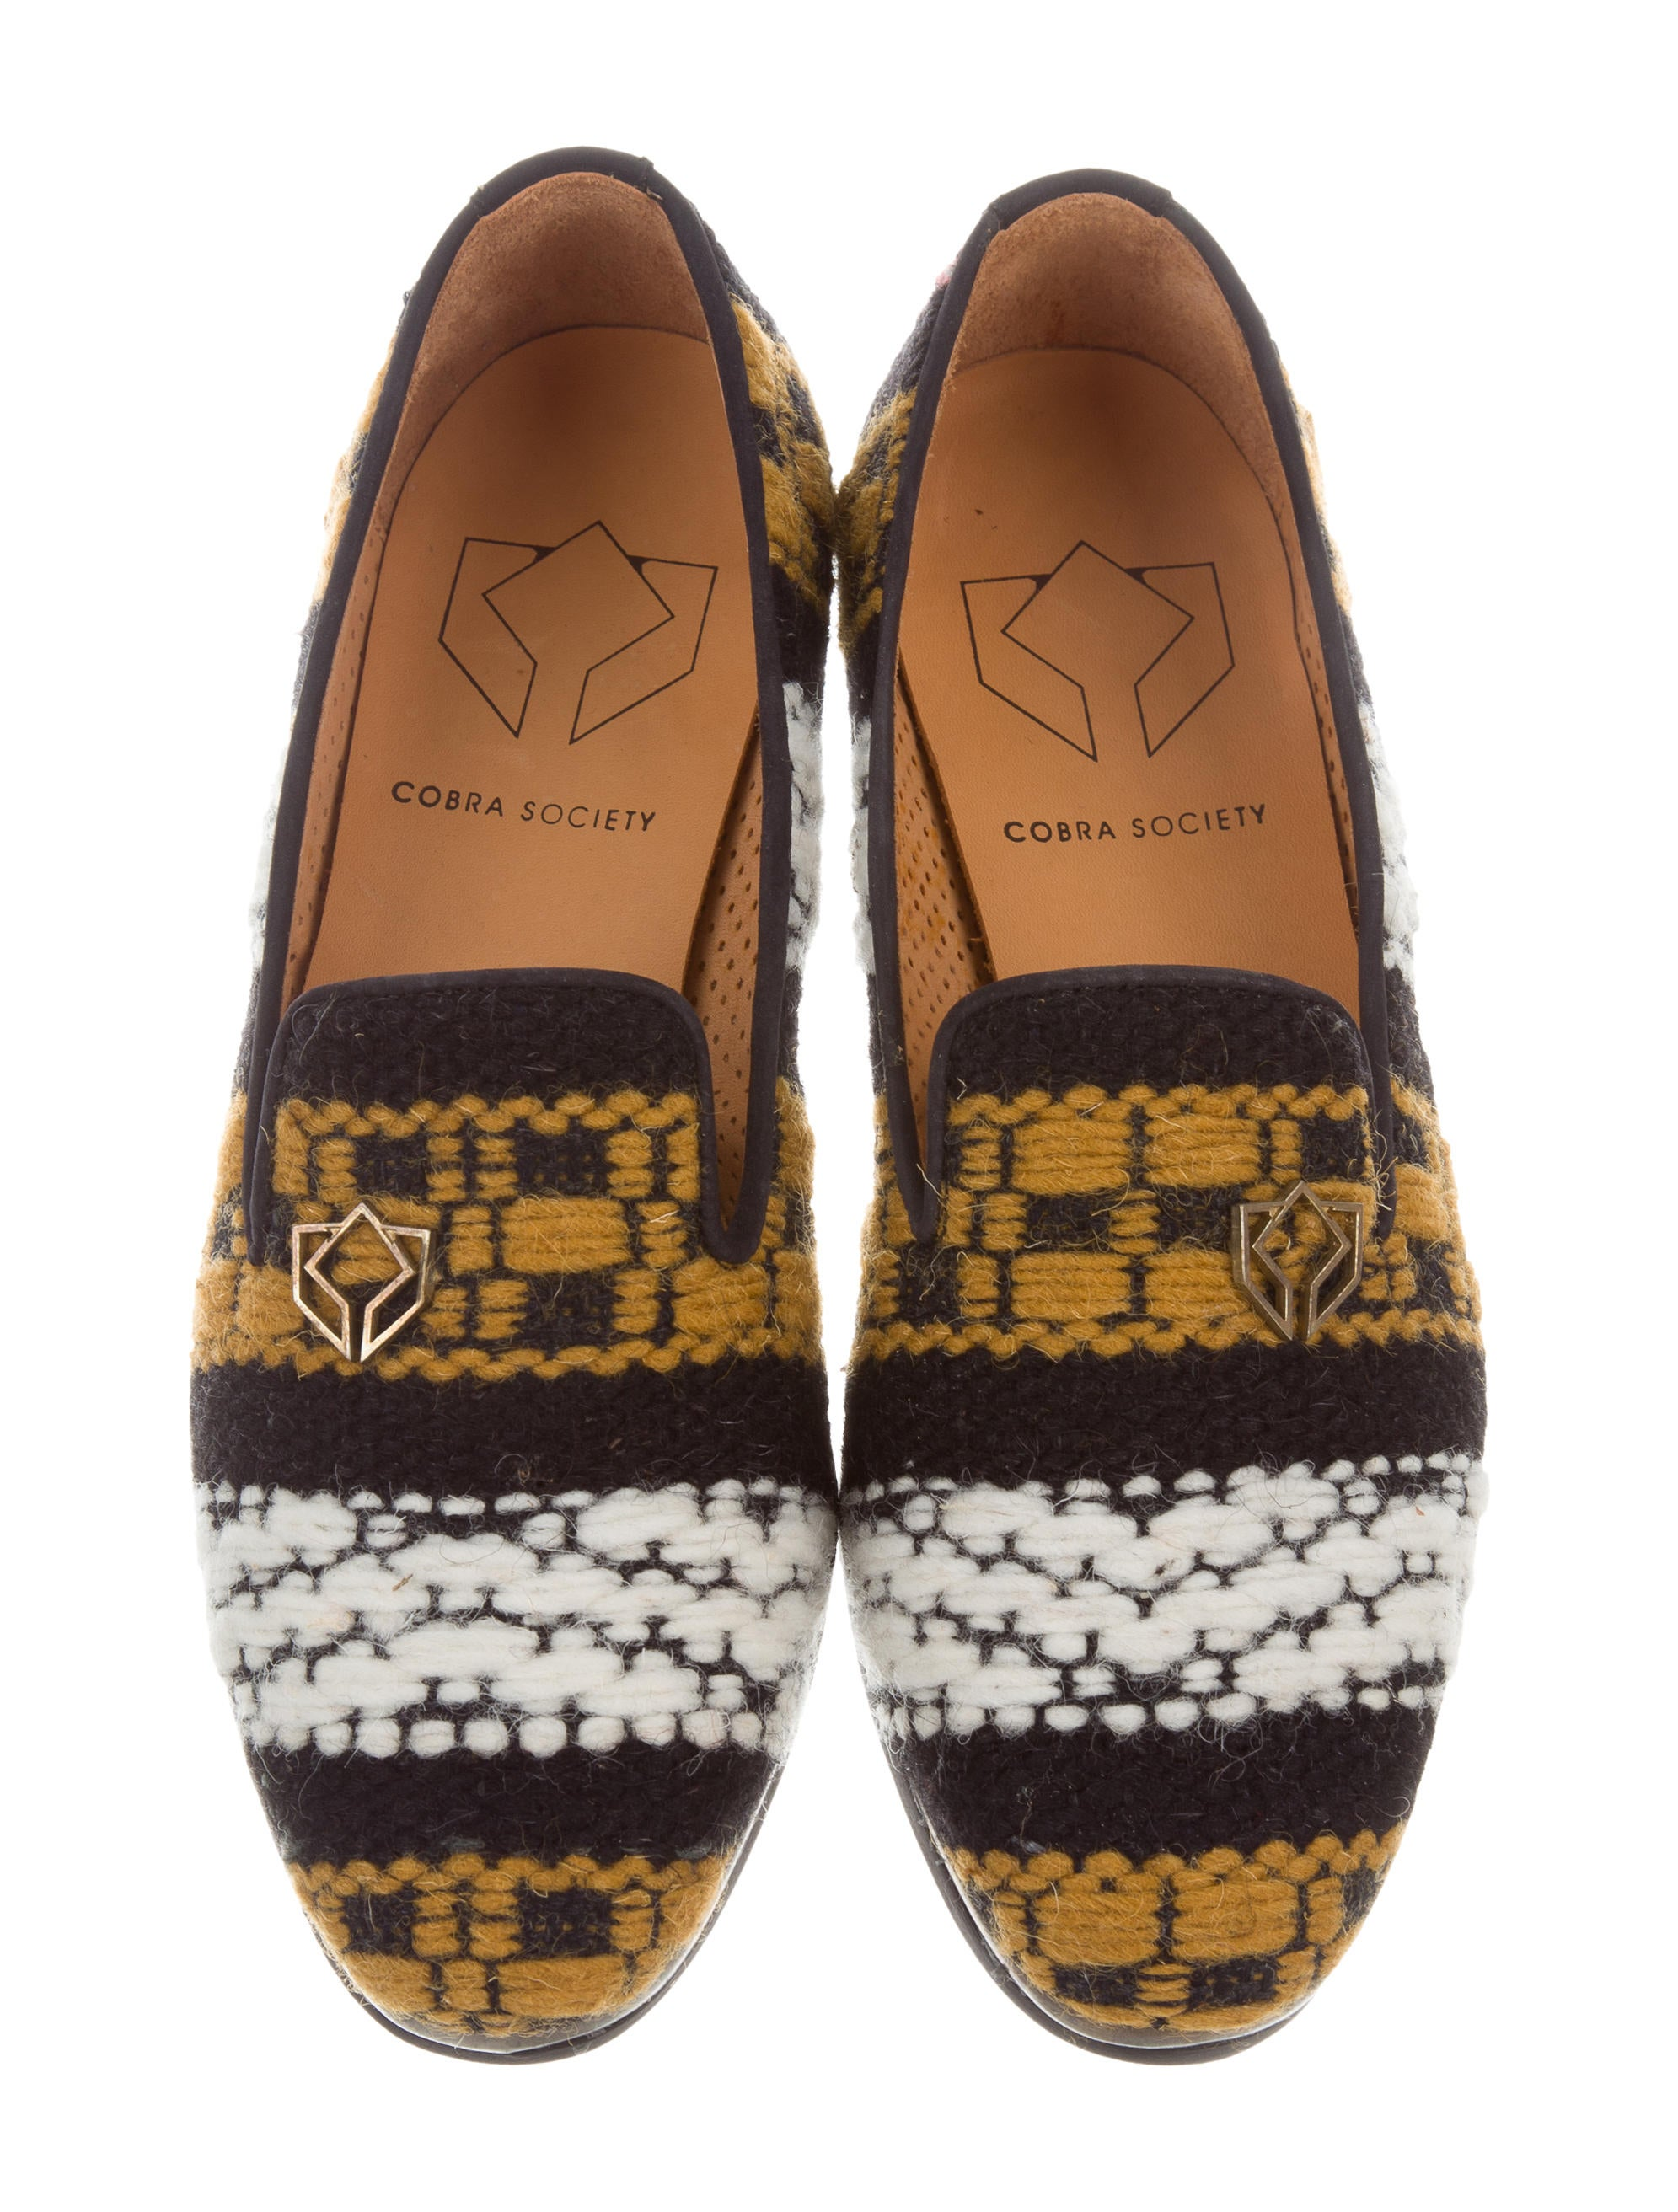 official online Cobra Society Najet Round-Toe Loafers w/ Tags clearance new DVEbqErOC